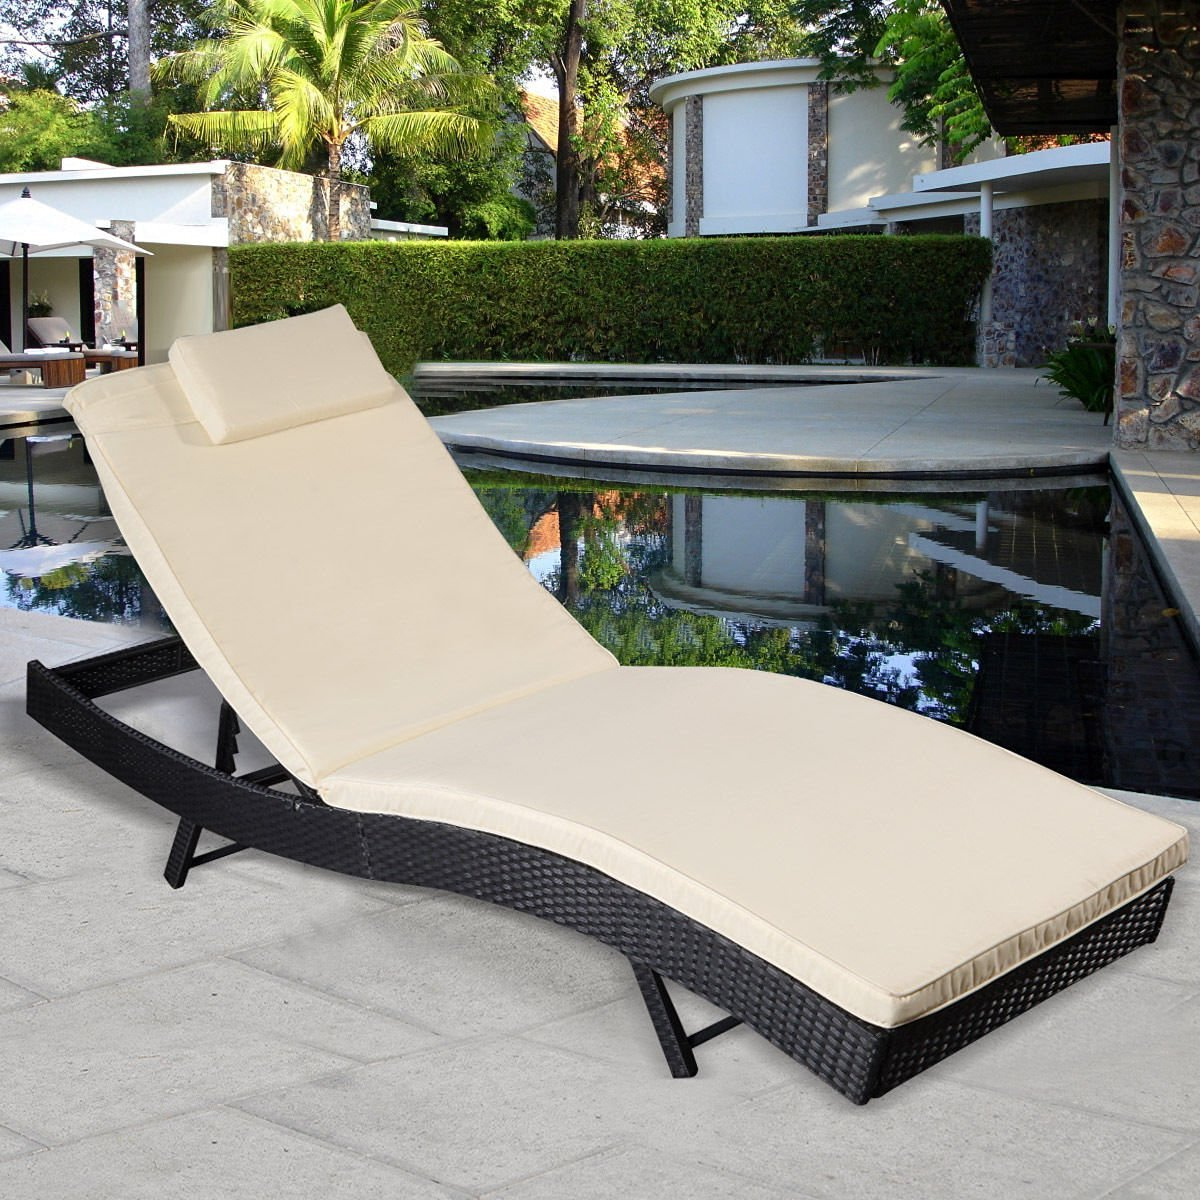 2019 Adjustable Outdoor Wicker Chaise Lounge Chairs With Cushion Within Cheap Lounge Pool Furniture, Find Lounge Pool Furniture (View 1 of 25)